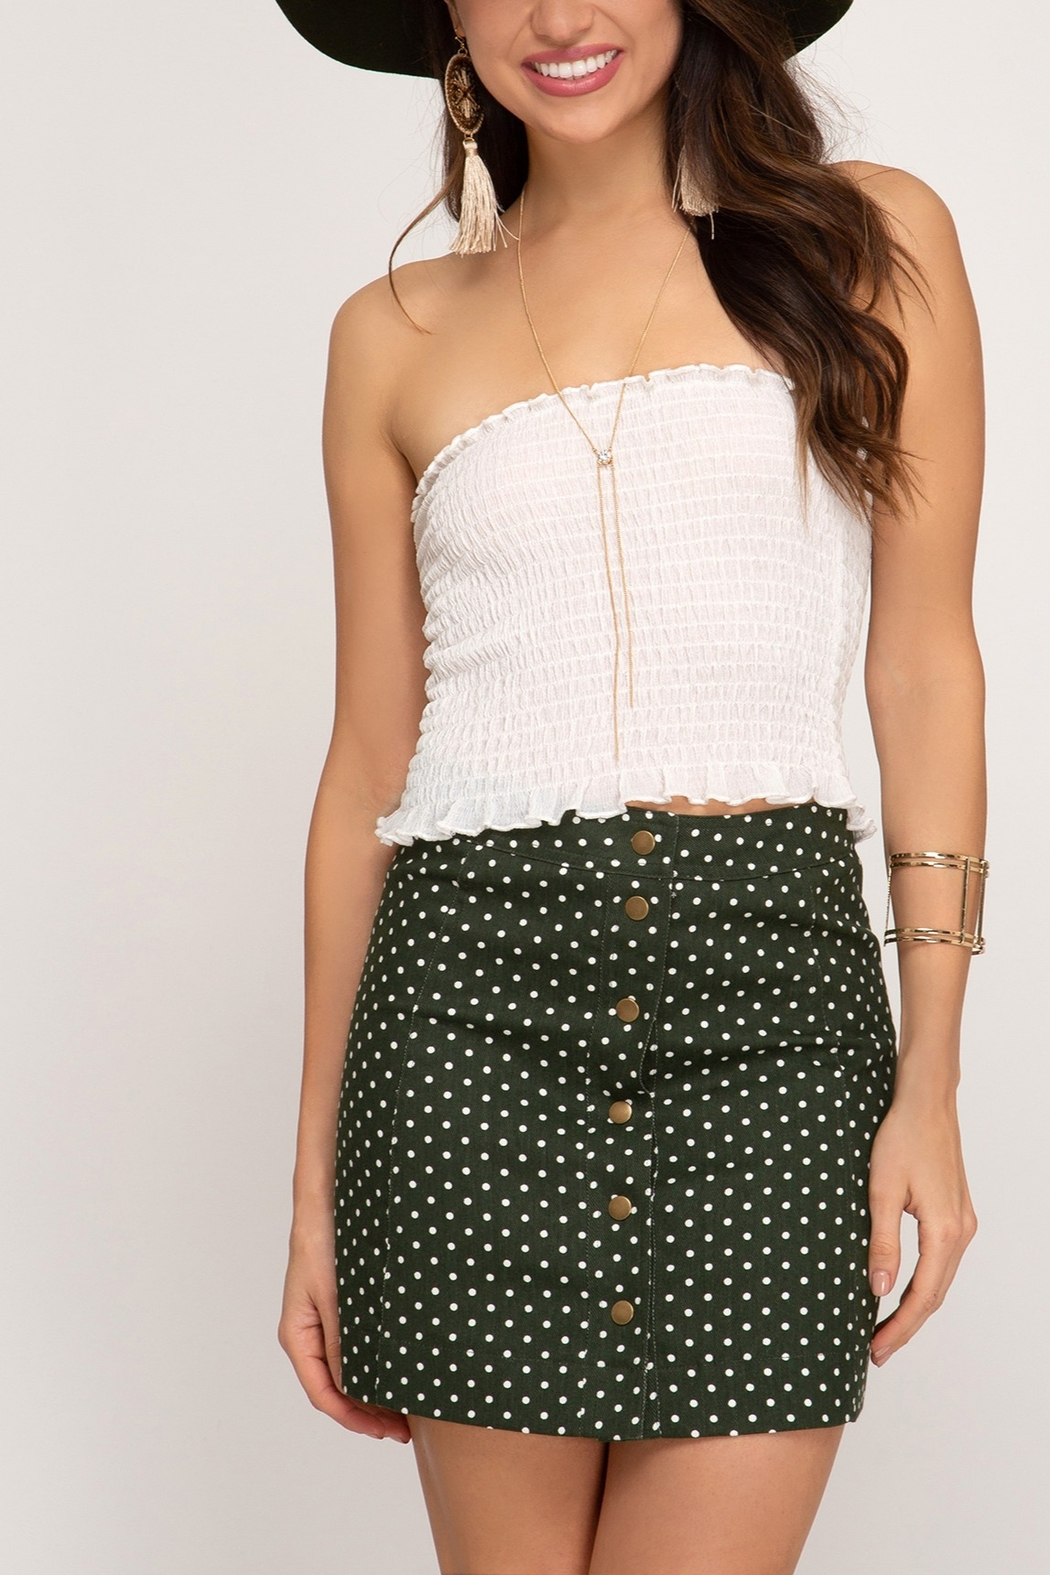 Lyn-Maree's  Polka Dot Skirt - Front Cropped Image